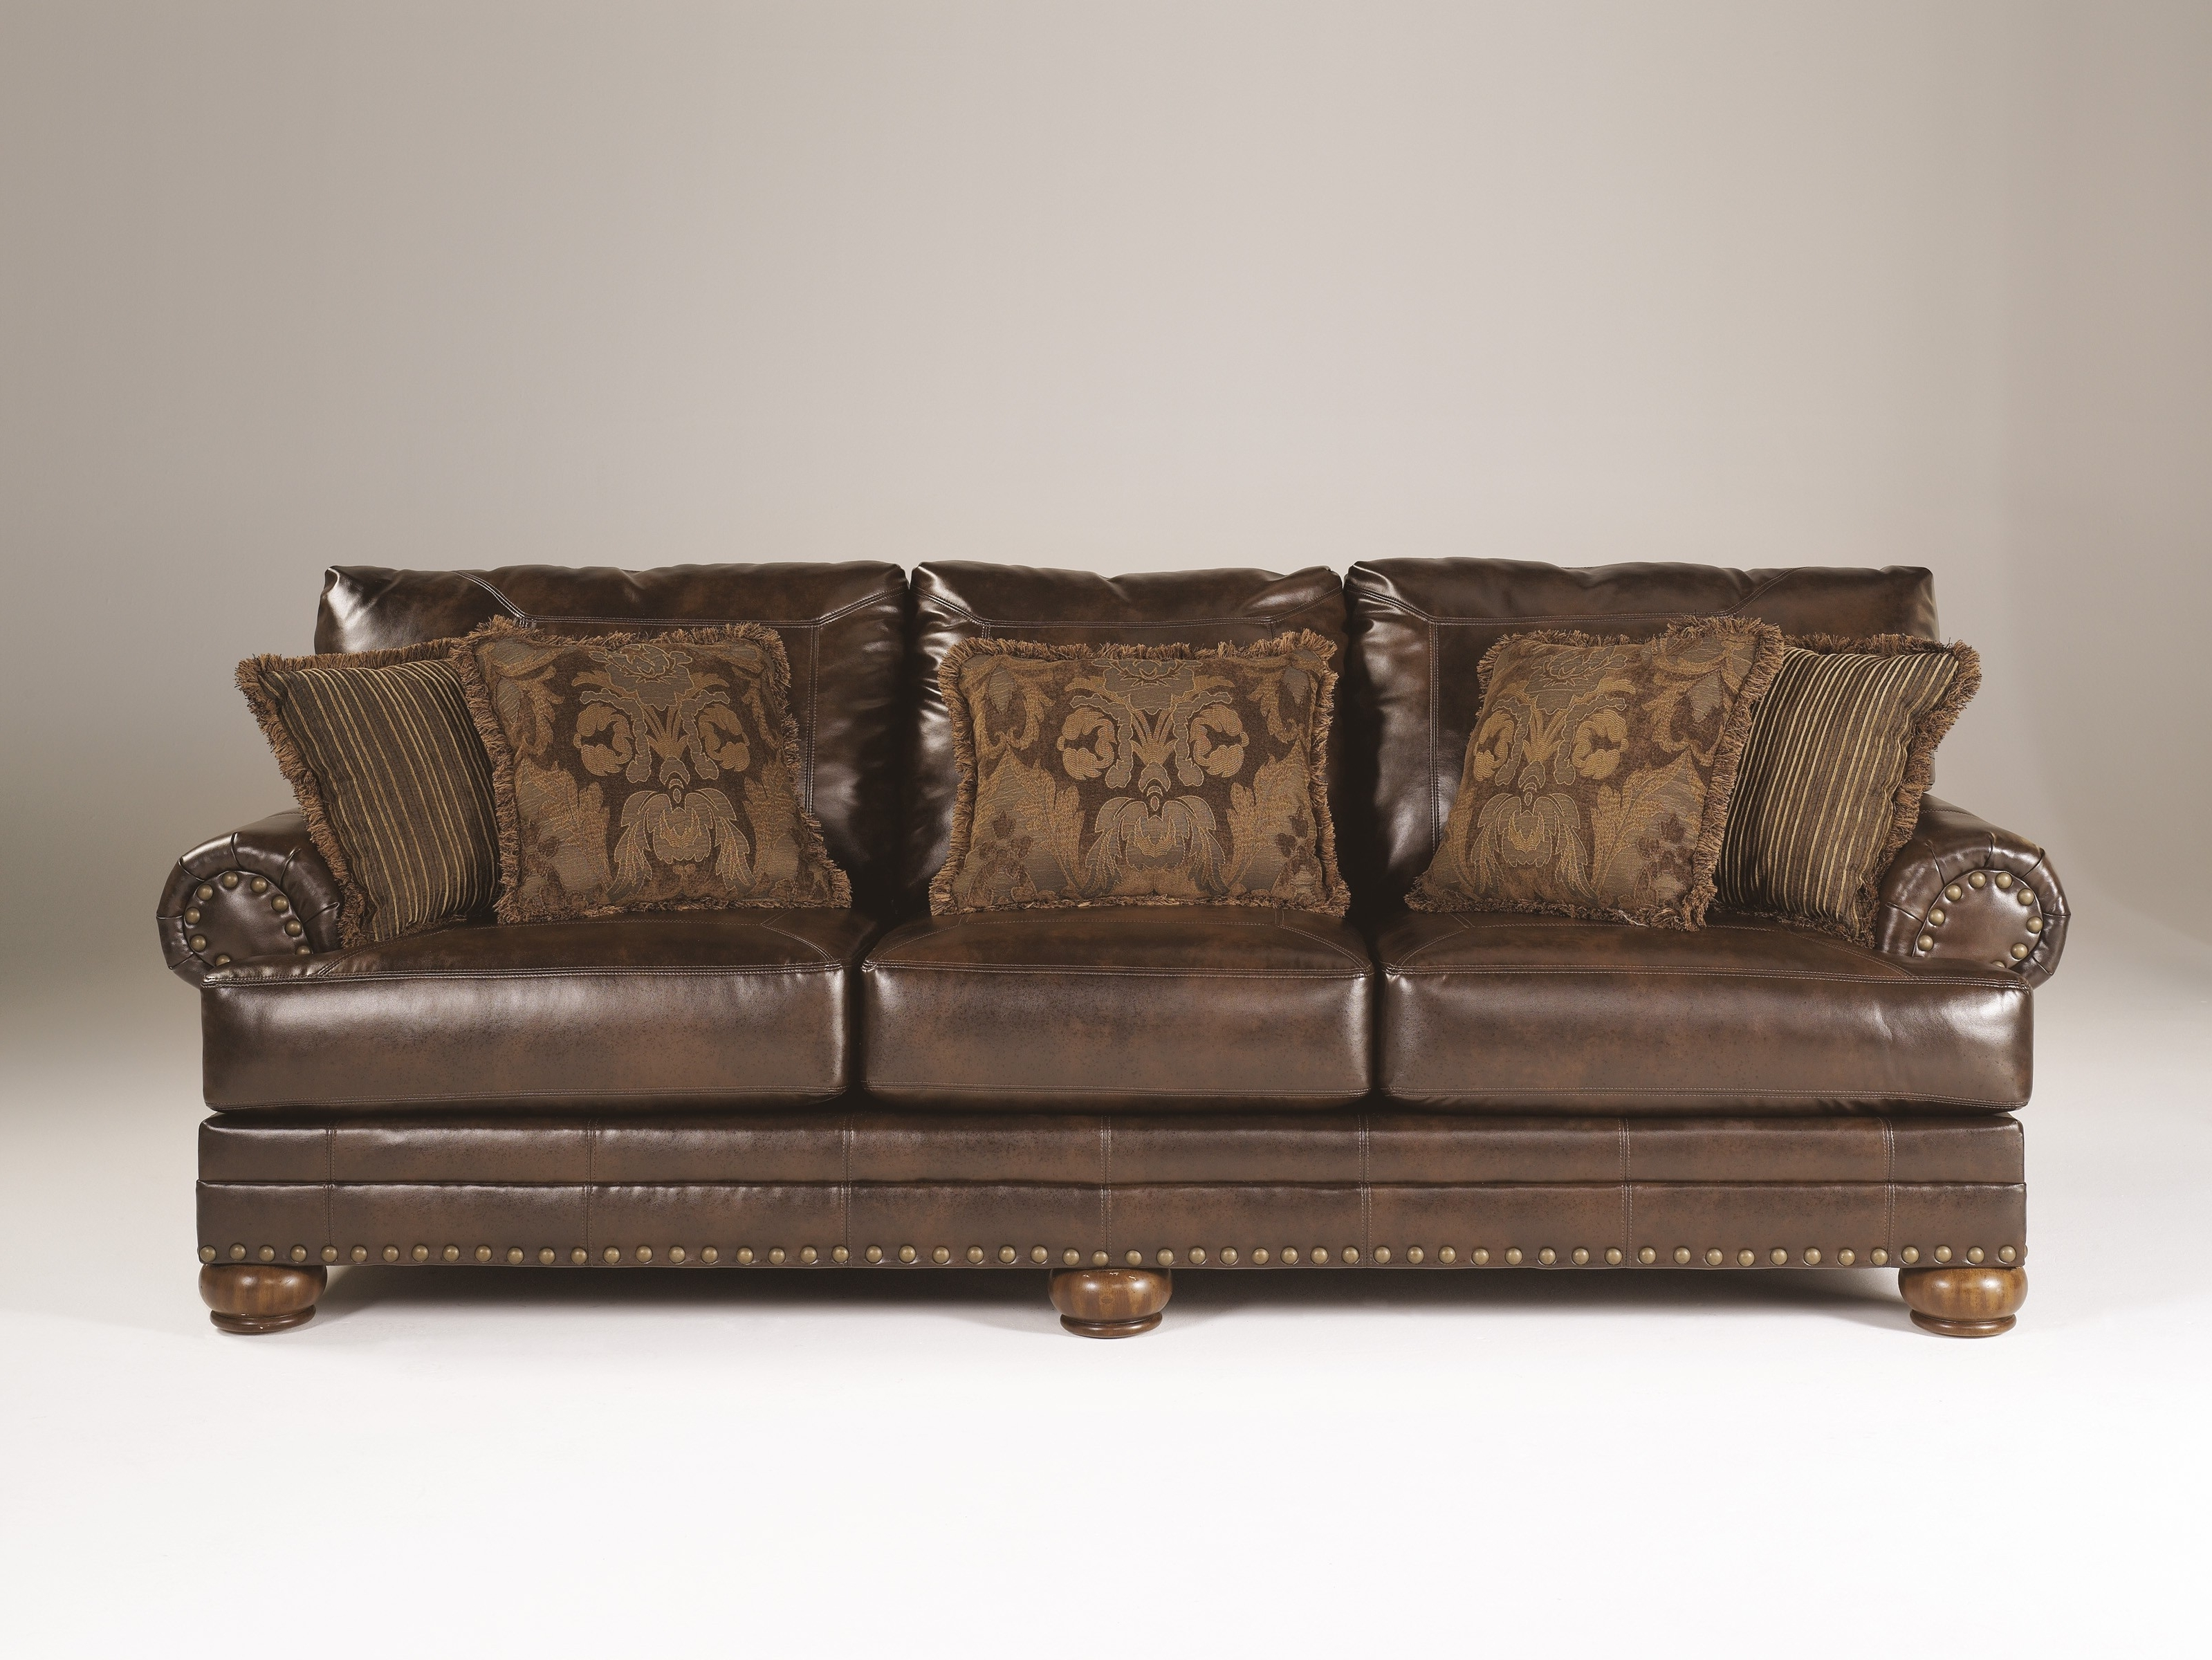 Ashley Brown Leather Durablend Antique Sofaashley Furniture Inside 2018 Antique Sofas (View 6 of 20)